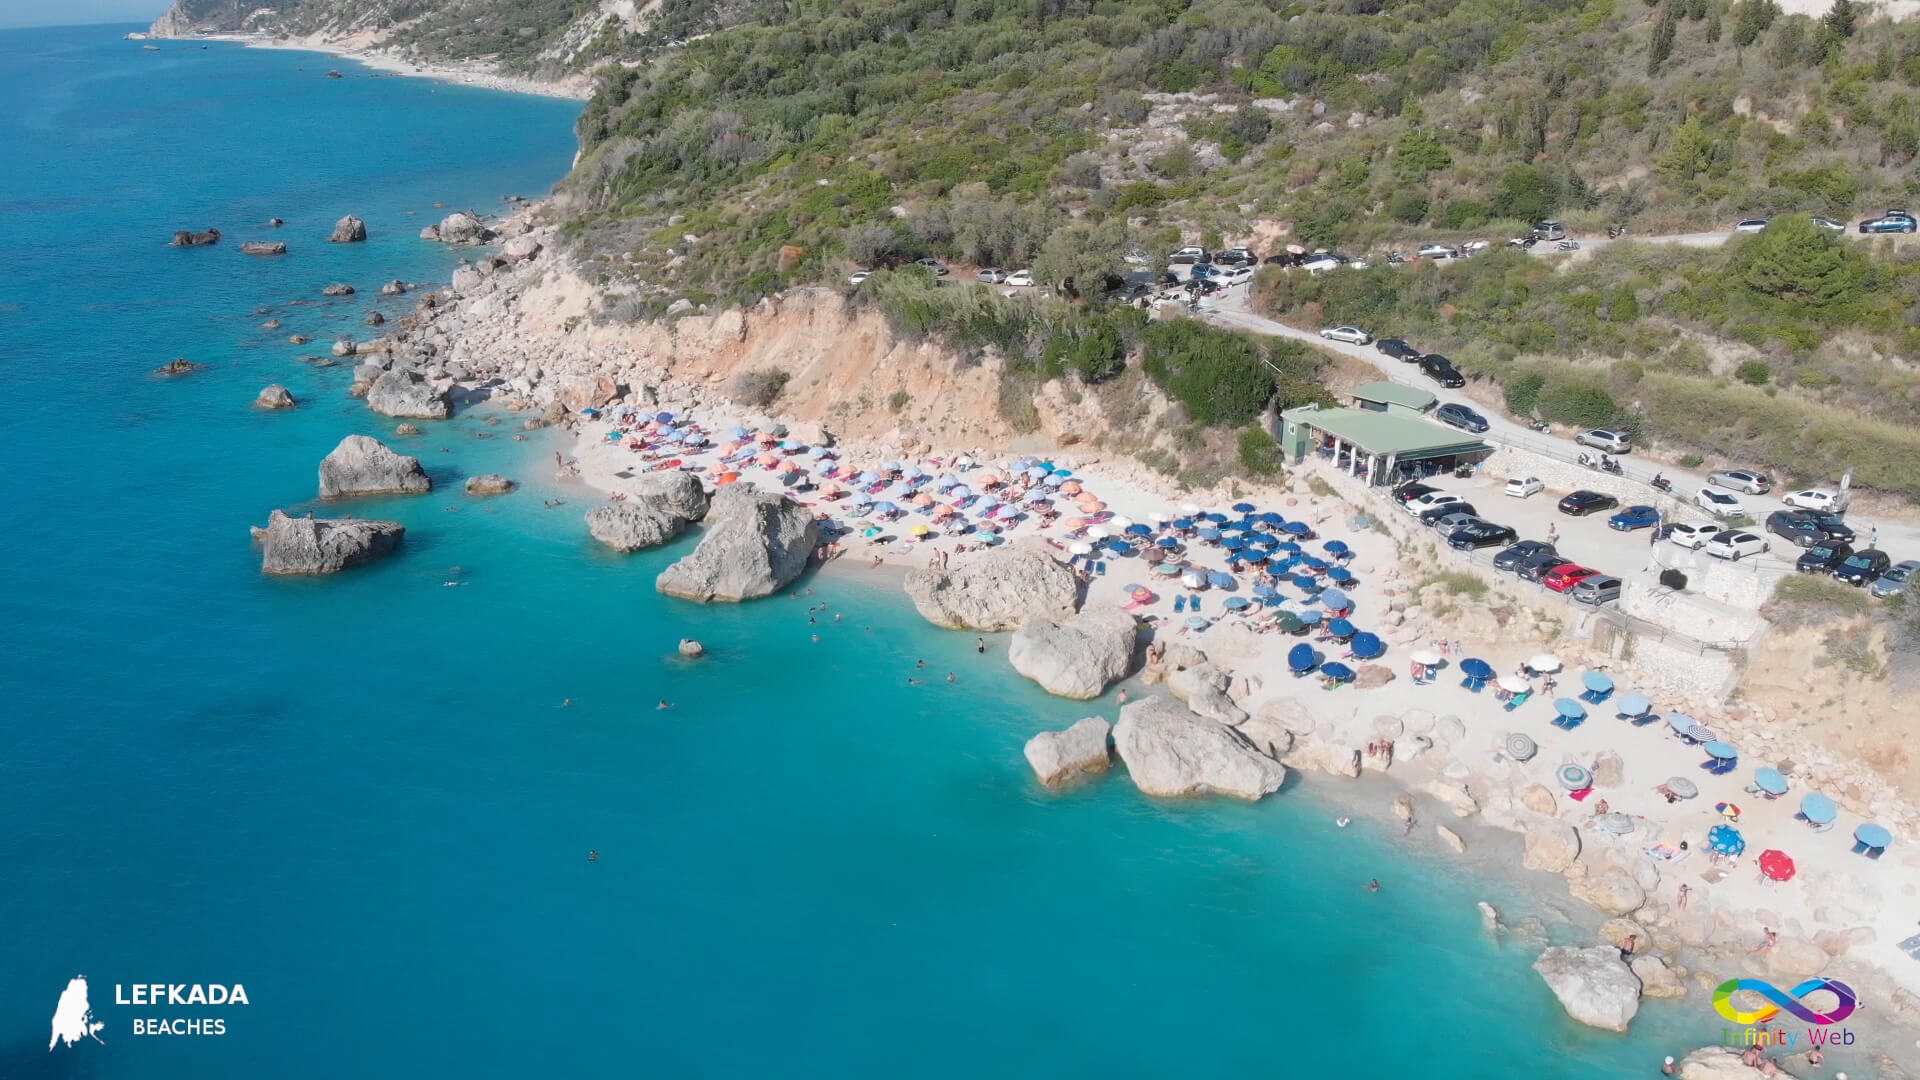 Lefkada beaches Kavalikefta Beach